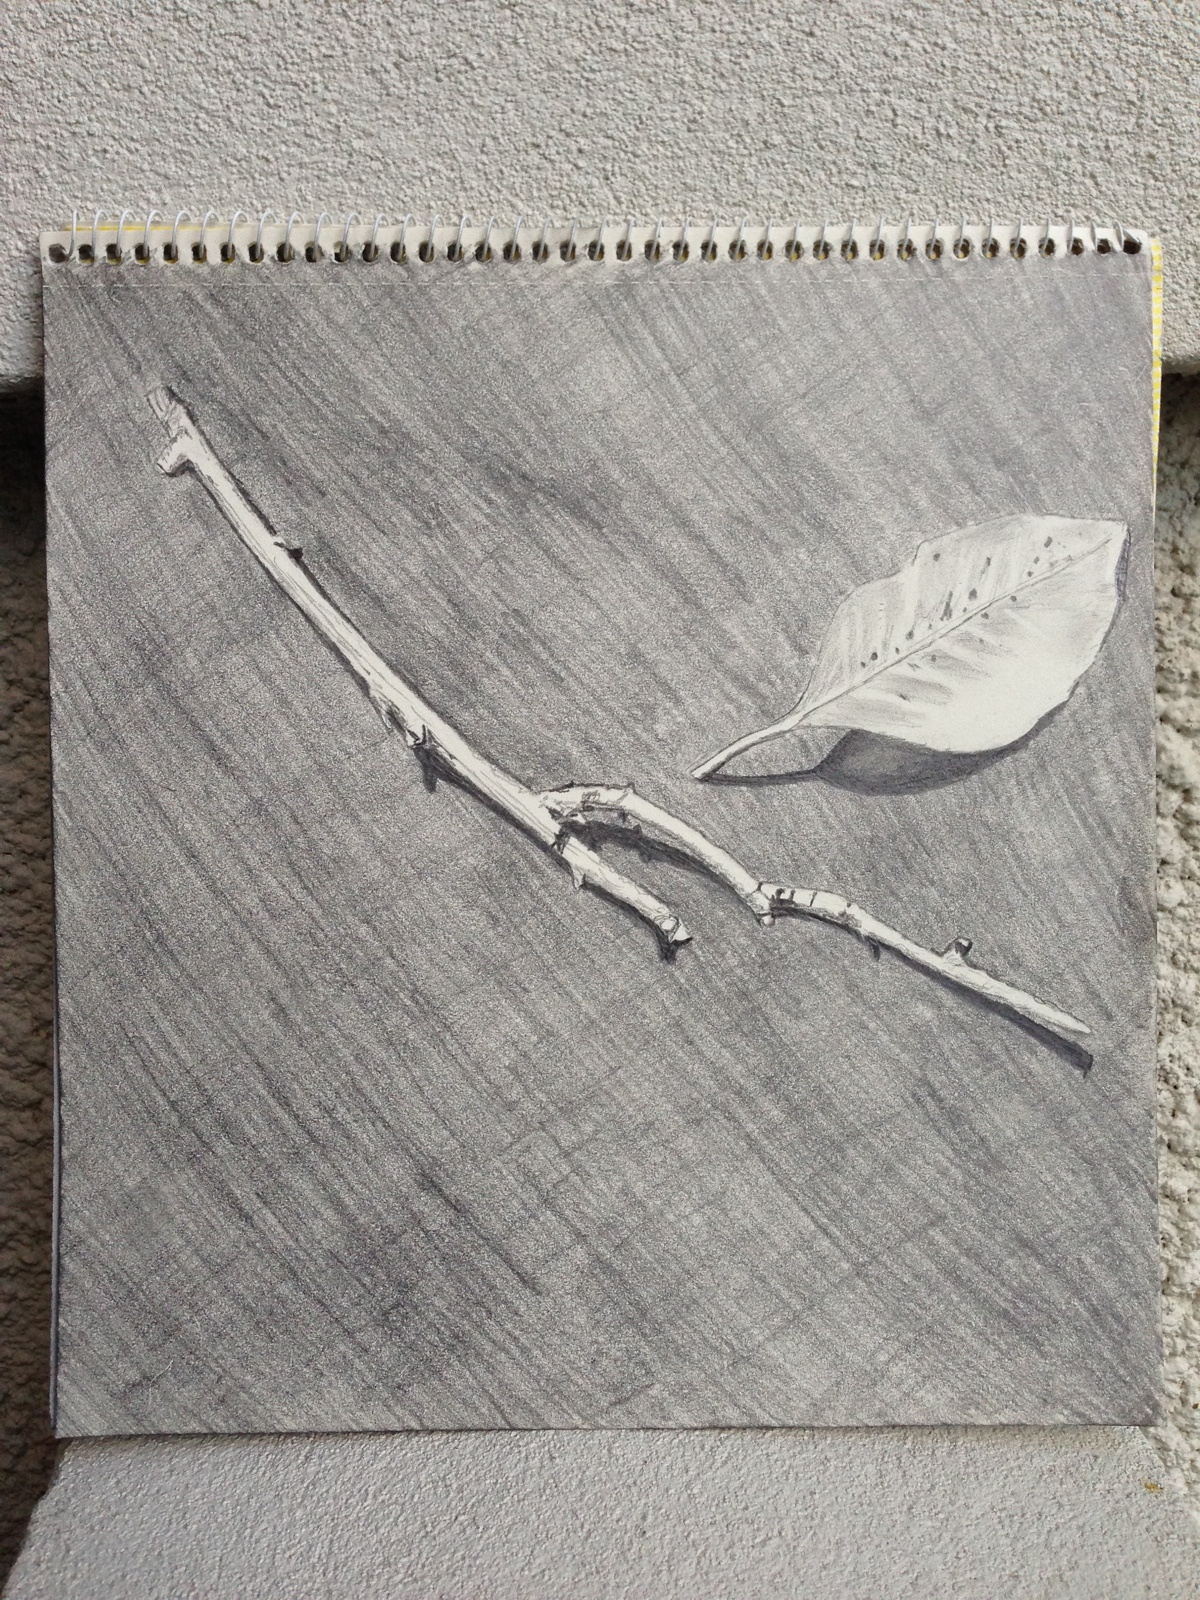 A leaf and a branch